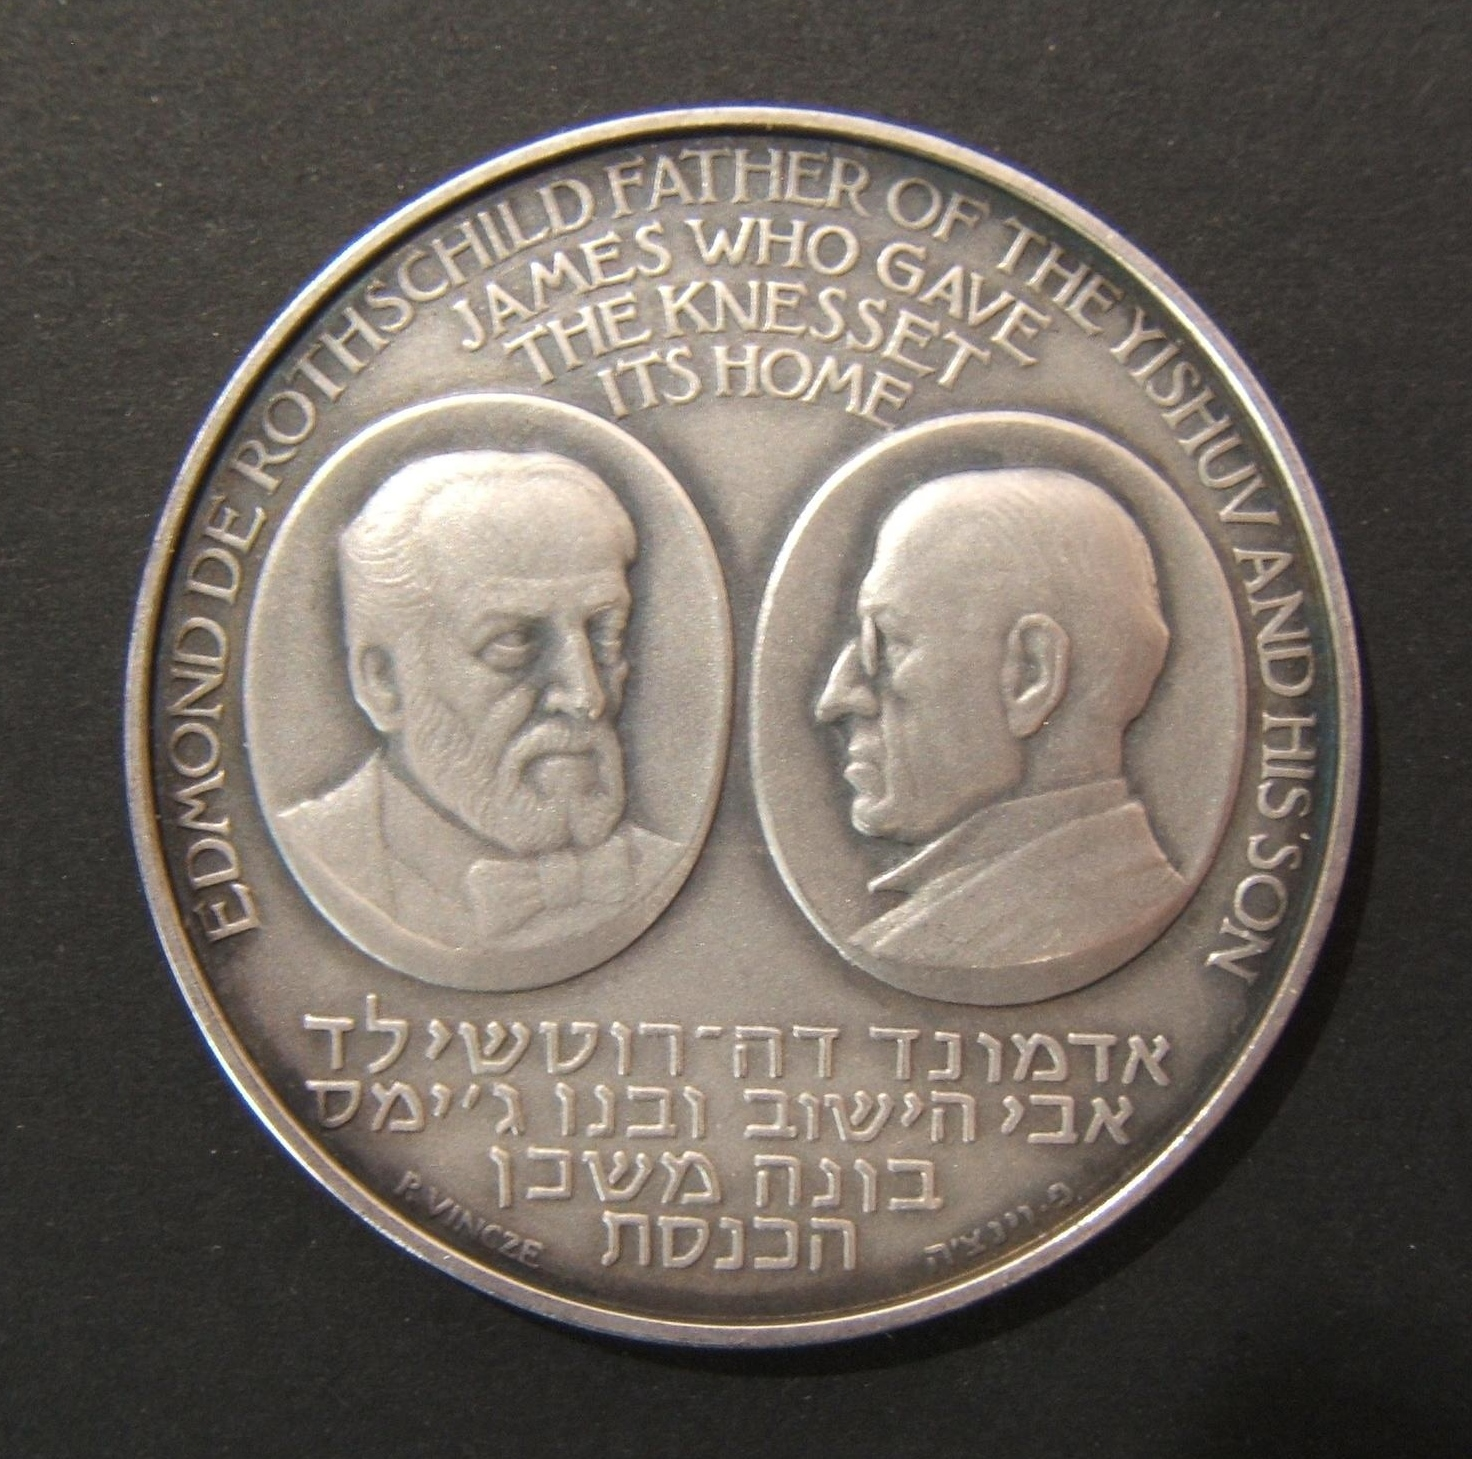 Israel: Rothschild / Knesset building numbered (285 out of 4974) silver State Medal, 1966; by Paul Vincze; size: 45mm; weight: 40g. In AU+: light surface mark on reverse.